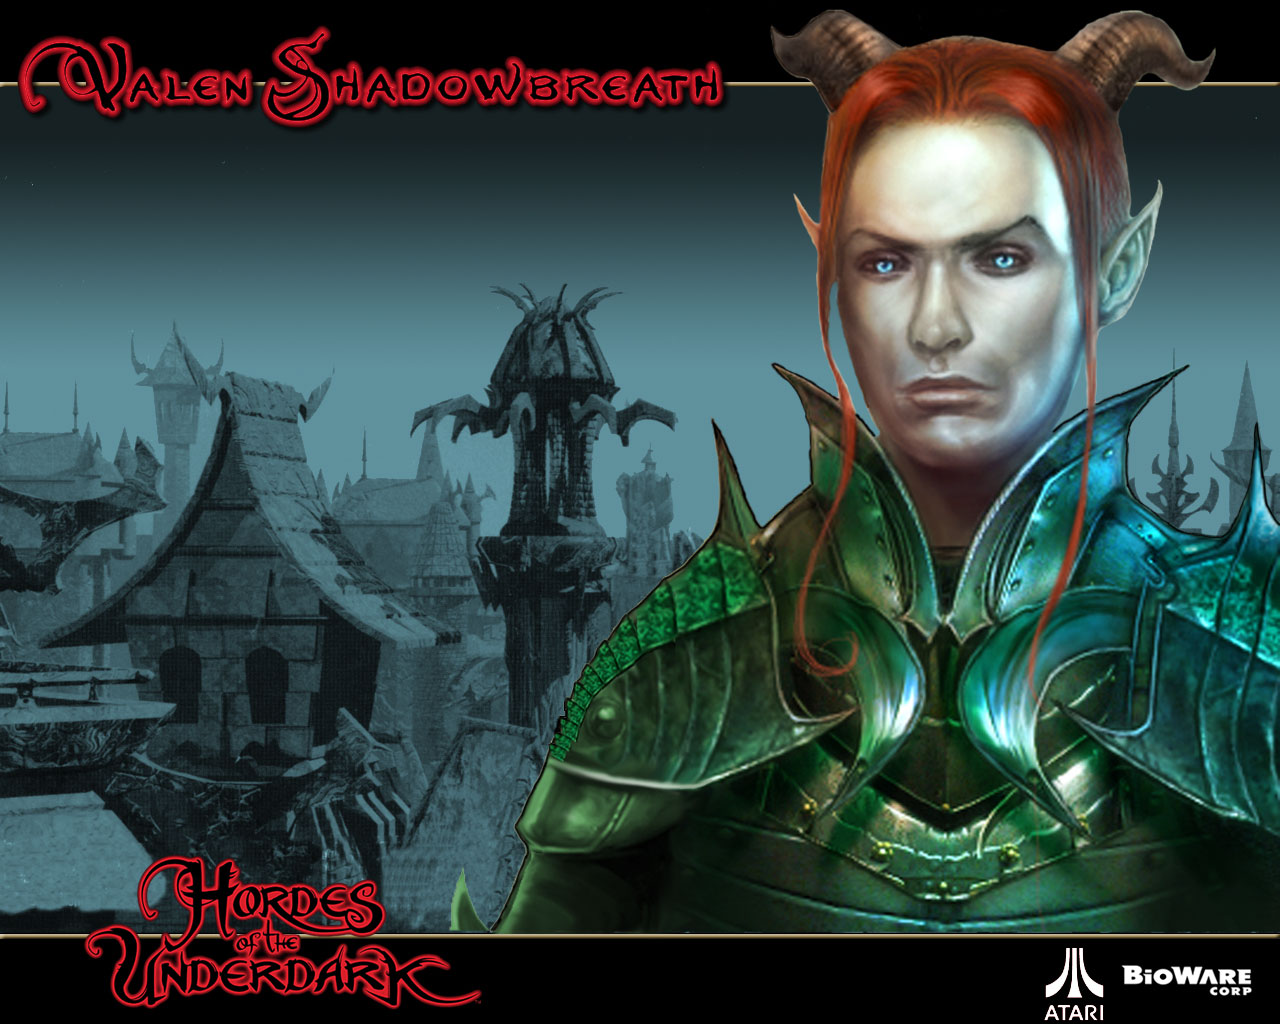 planetouched Valen il tiefling, wallpaper Videogame: Neverwinter Nights, Hordes of the Underdark (2003-12) © Atari, Wizards of the Coast & Hasbro